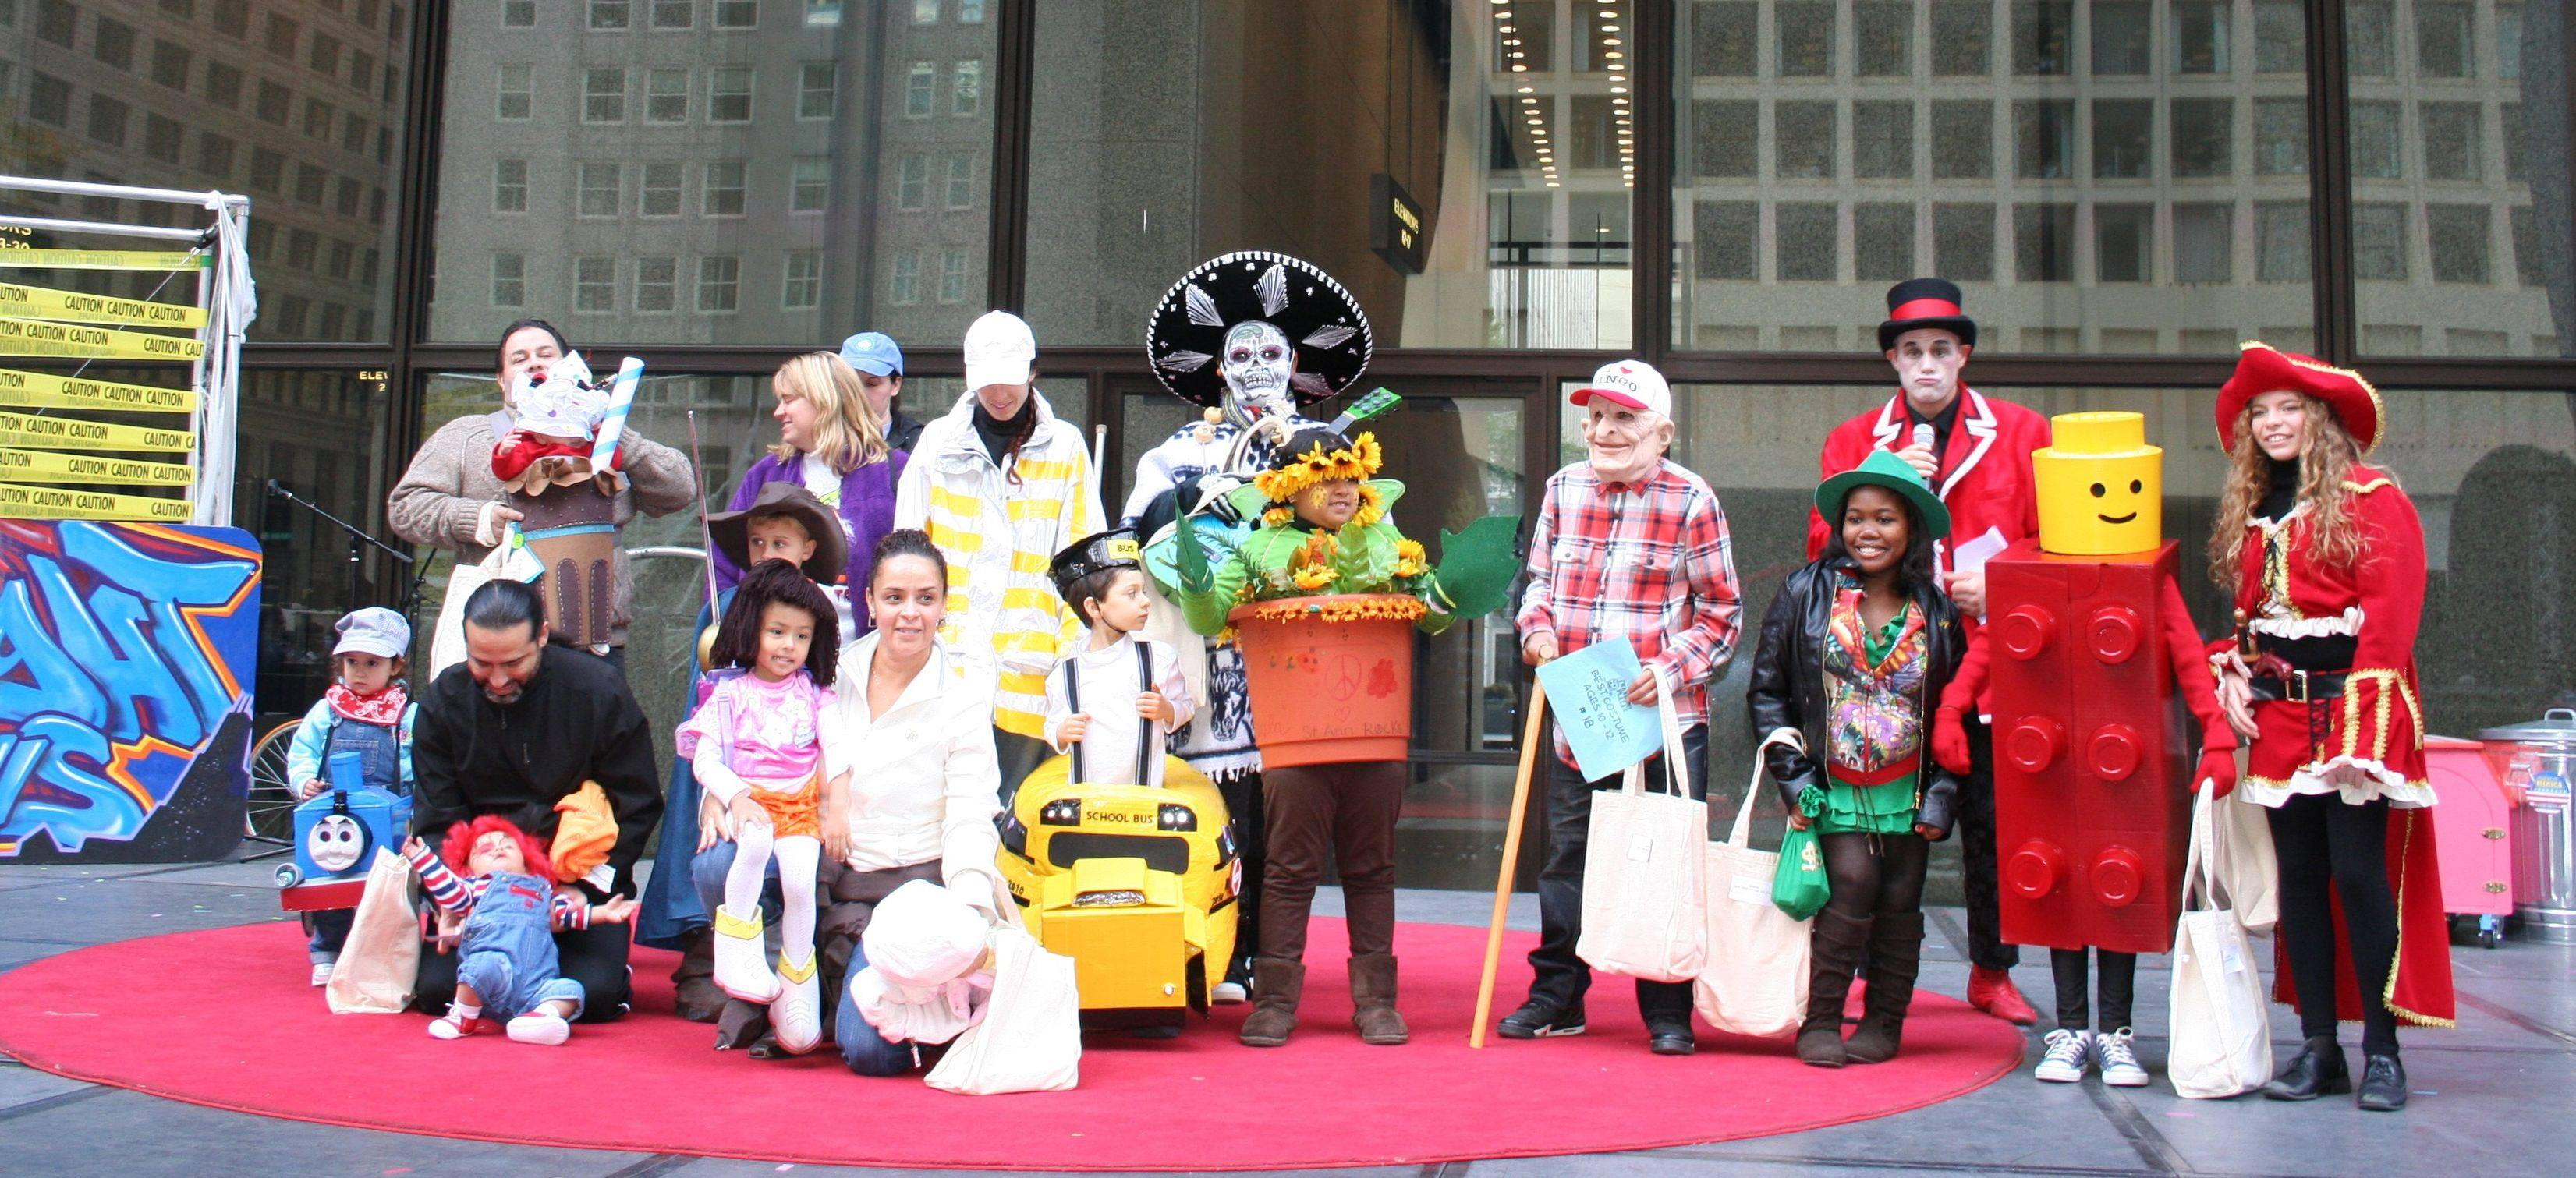 Daley Plaza in downtown Chicago is the site for lots of free family fun during Chicagoween, Oct. 28-30.